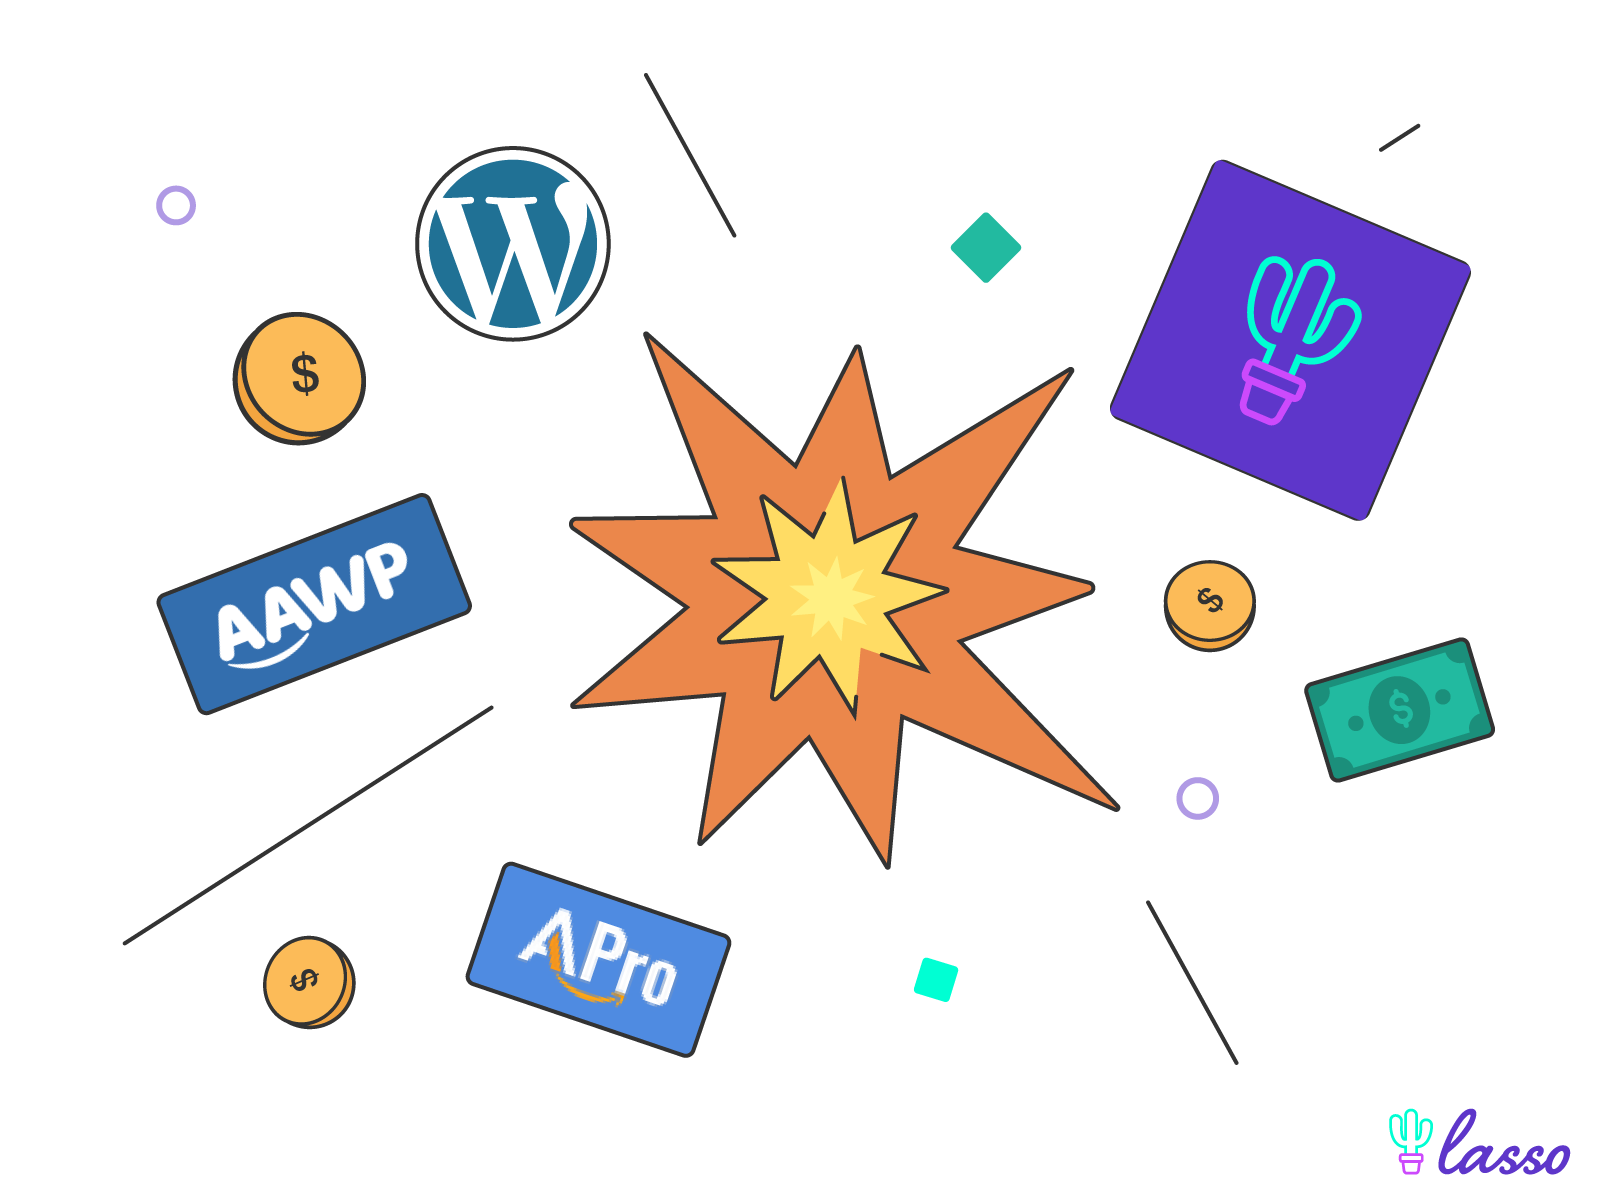 wordpress affiliate plugins logos exploding out of an explosion with dollar bill signs